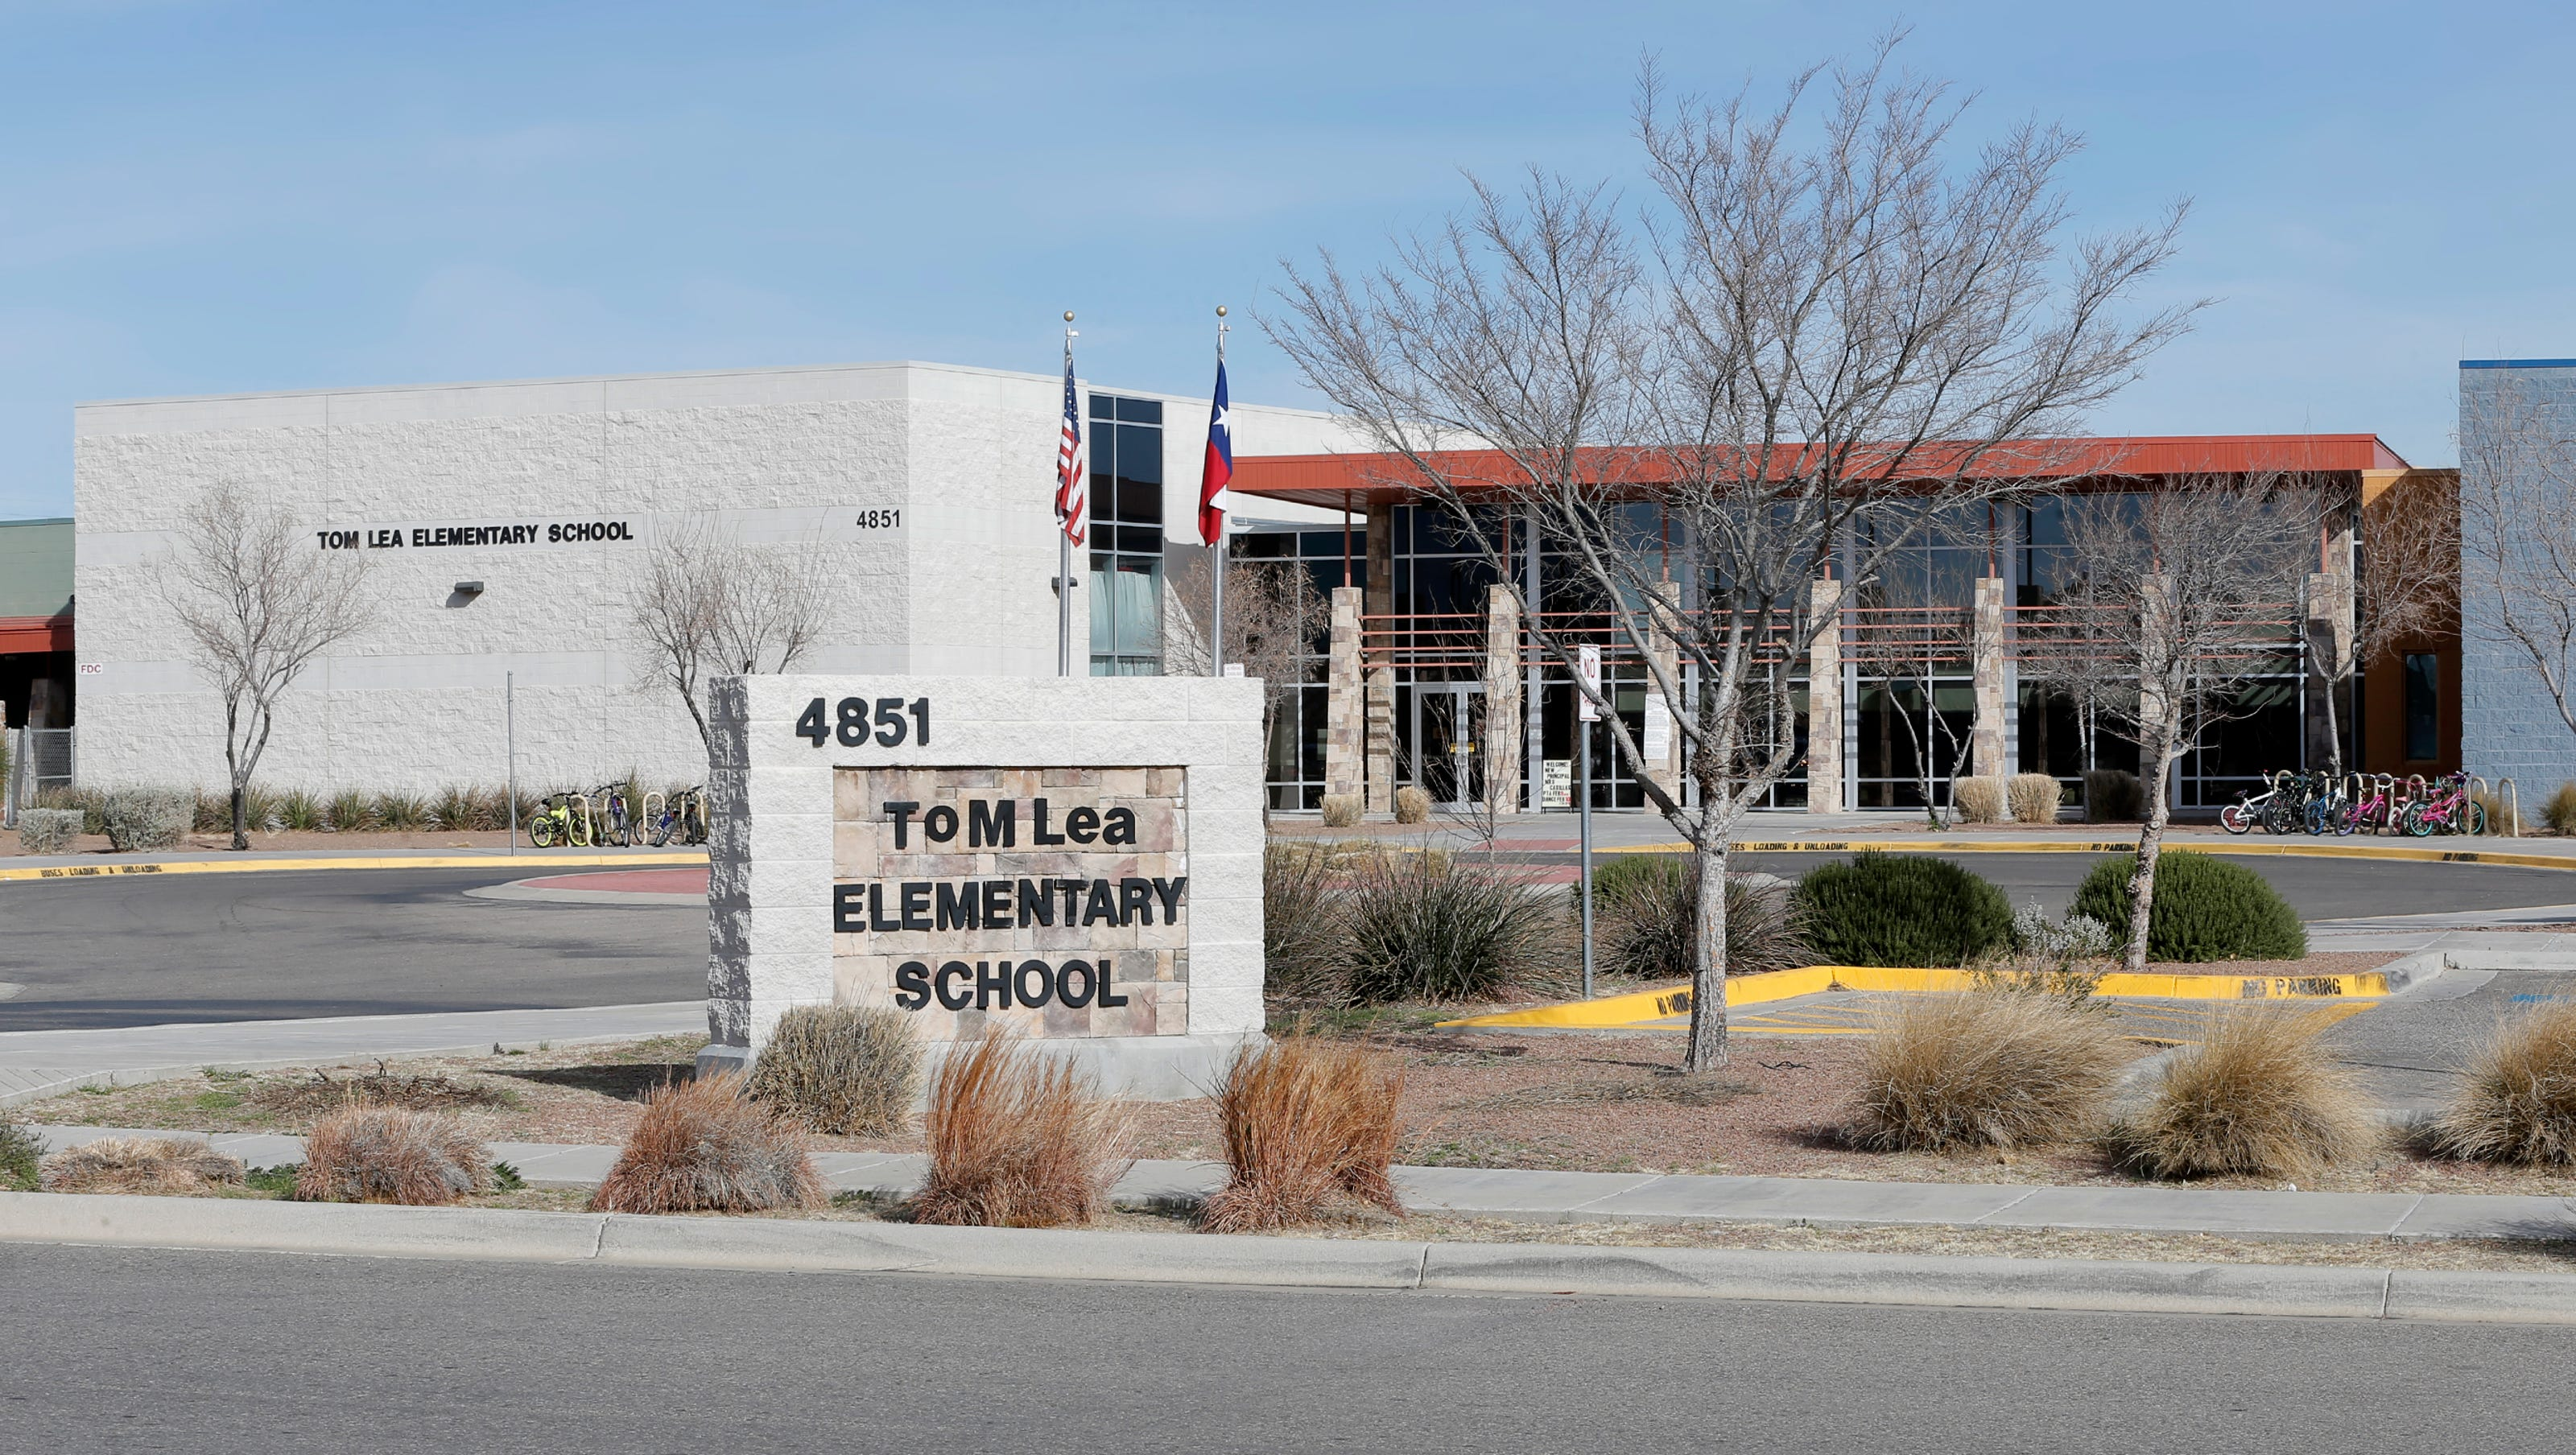 Episd Sues For Defects At Elementary School